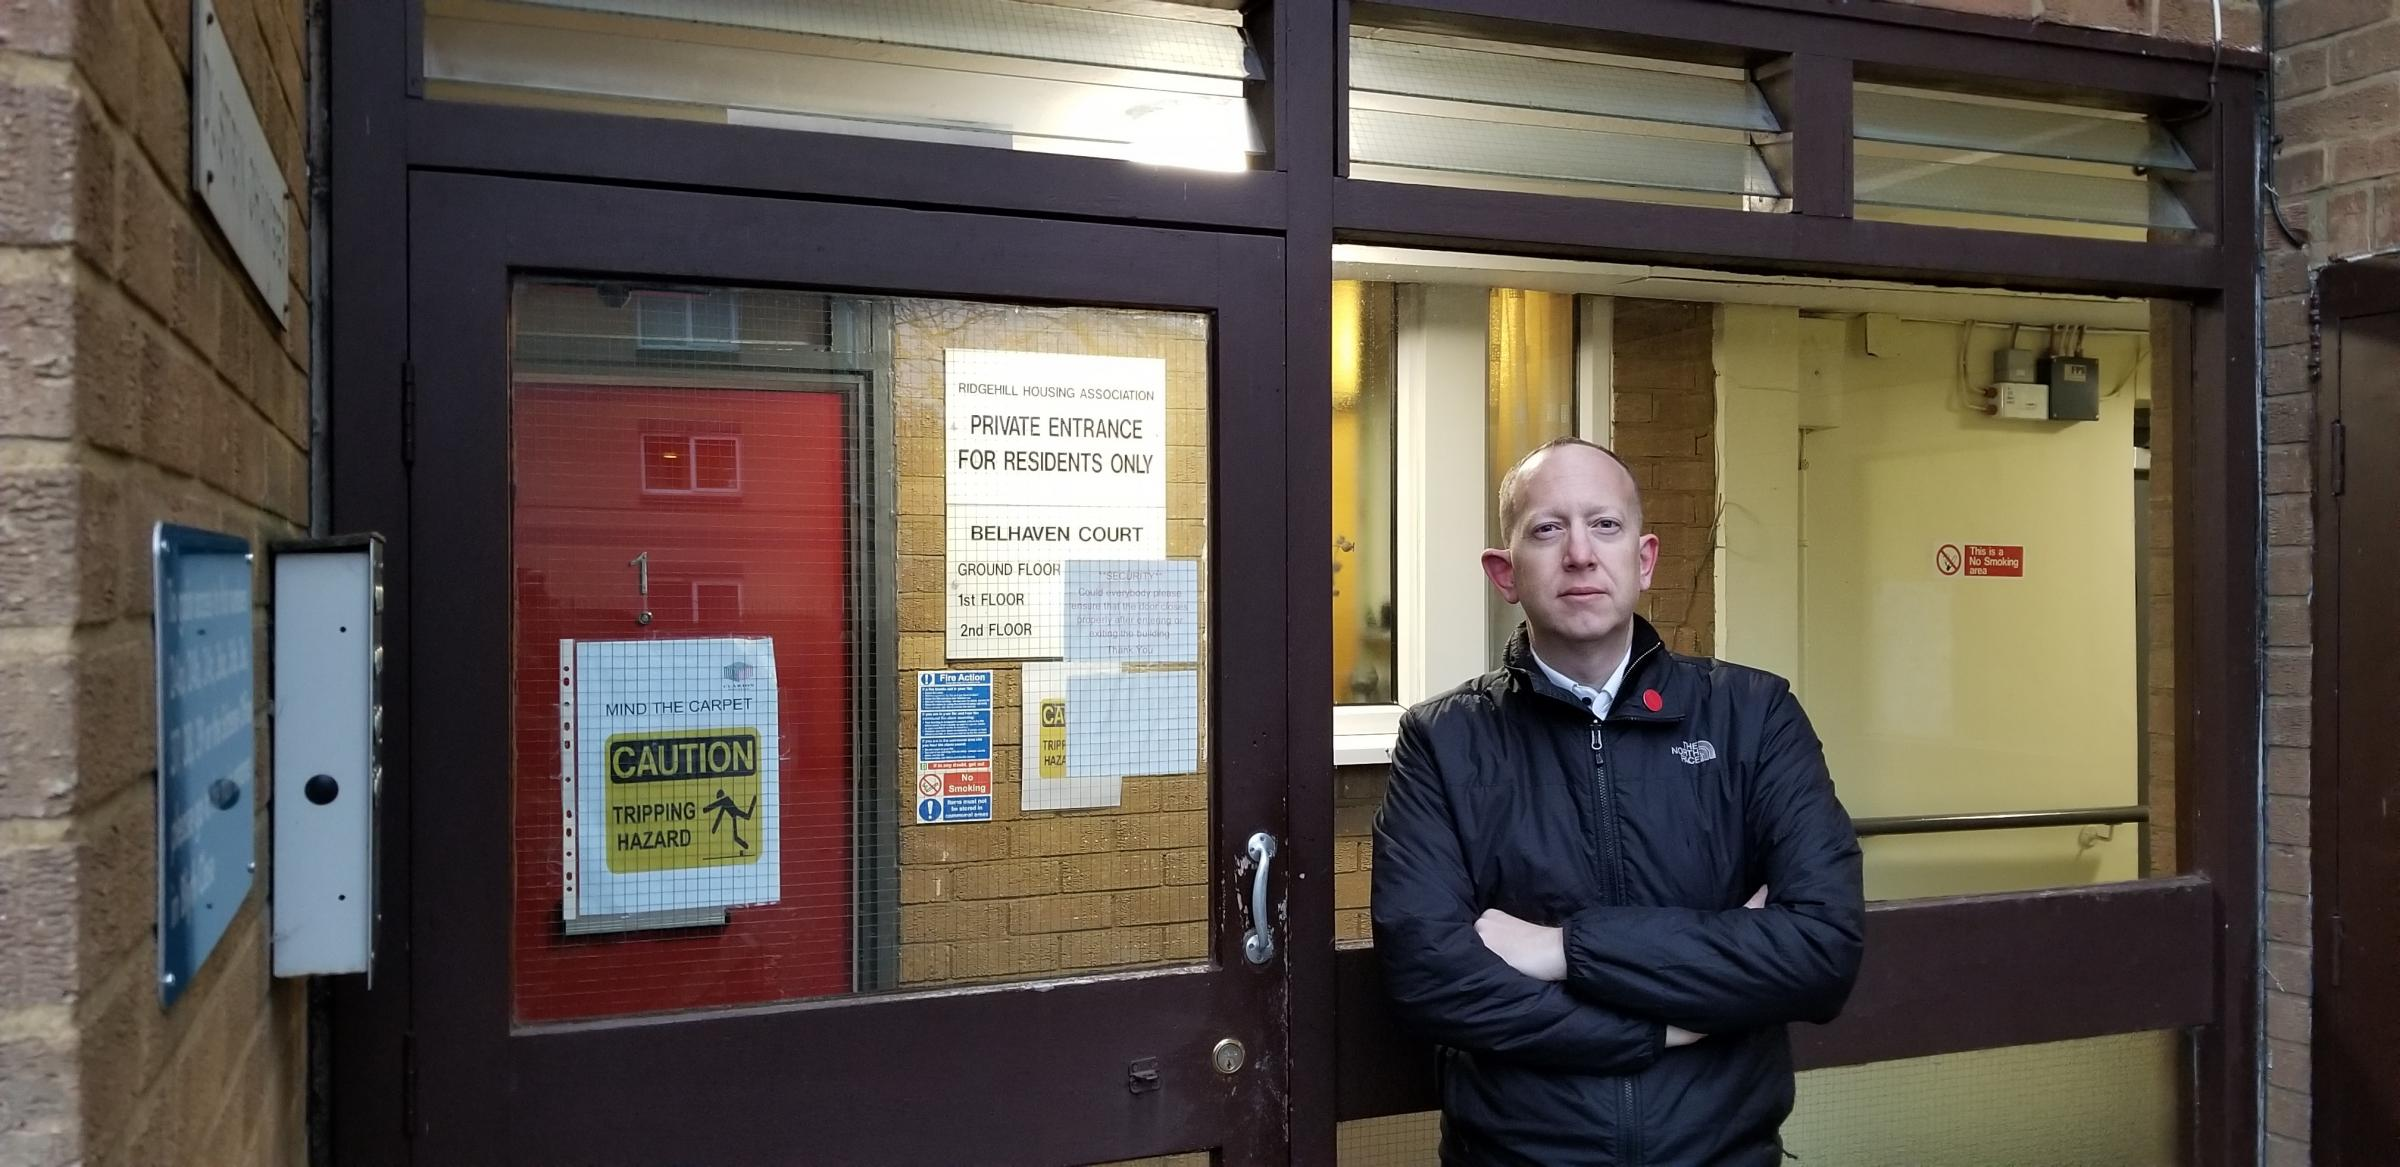 Cllr Jeremy Newmark, pictured, has called on the council to help fill empty properties